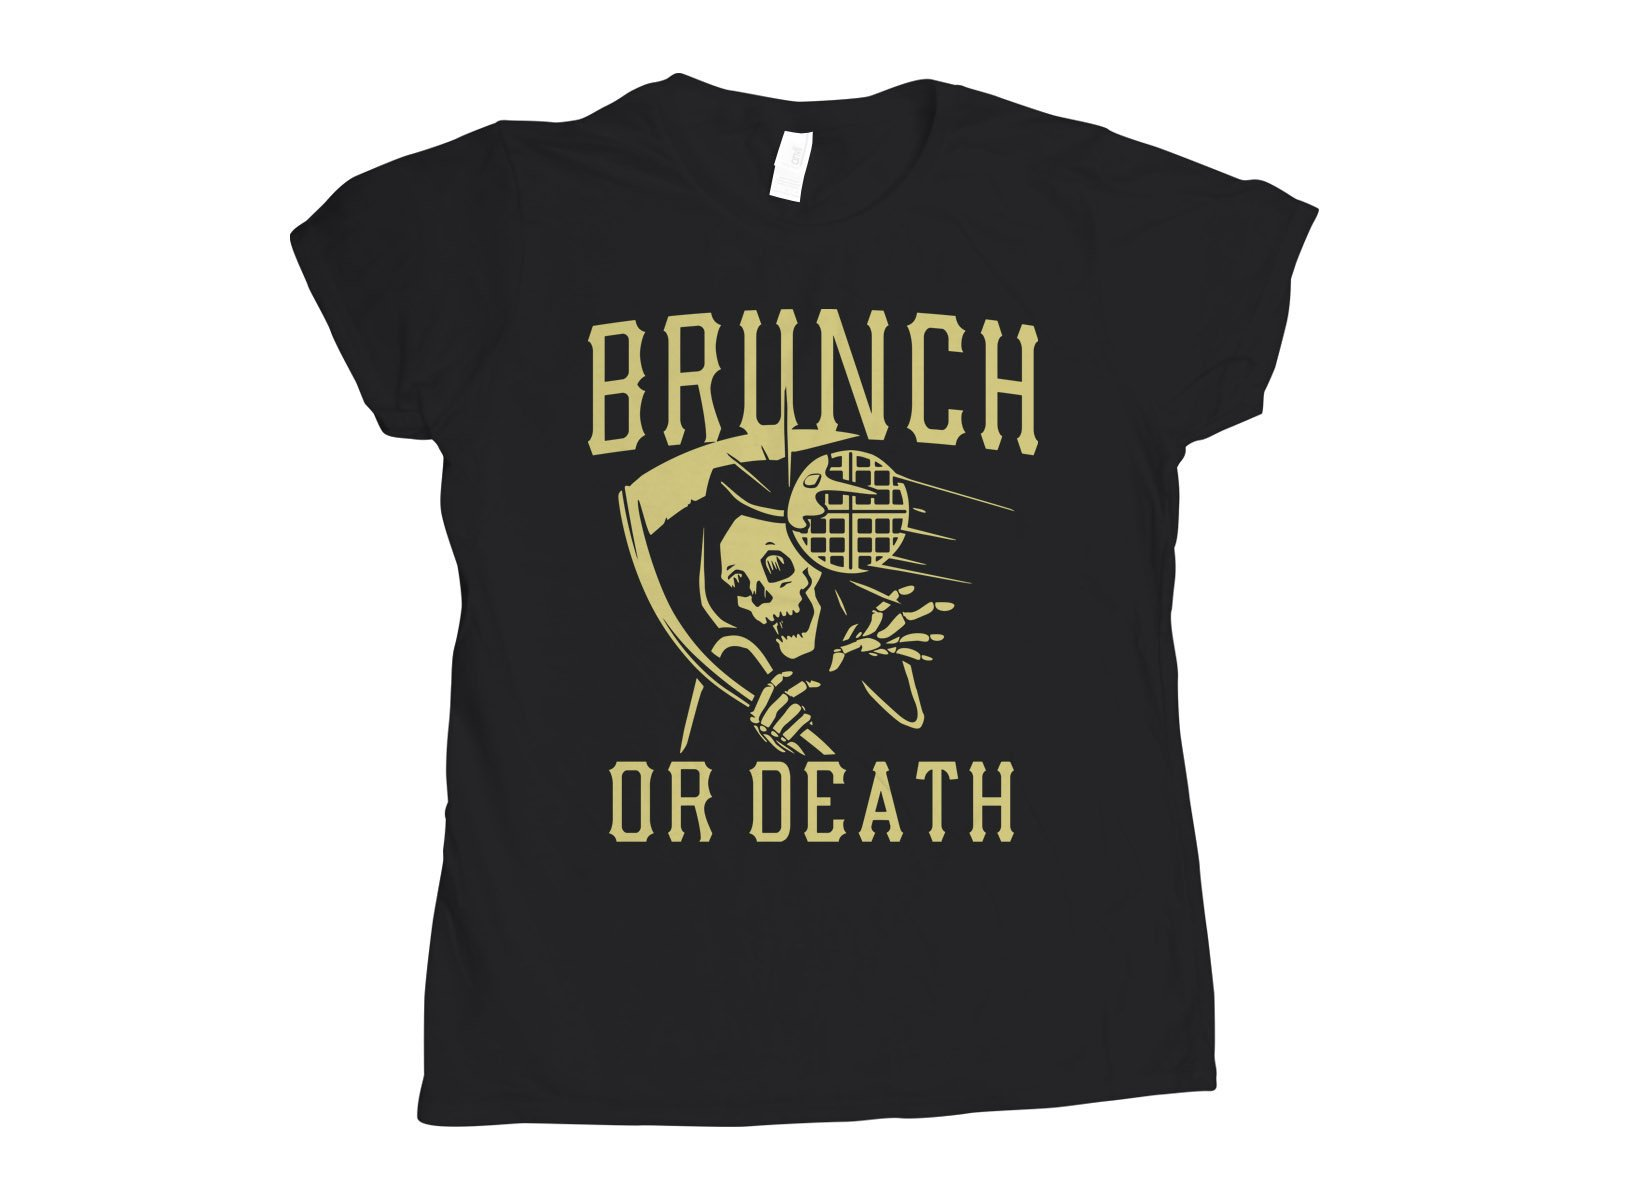 Brunch Or Death on Womens T-Shirt